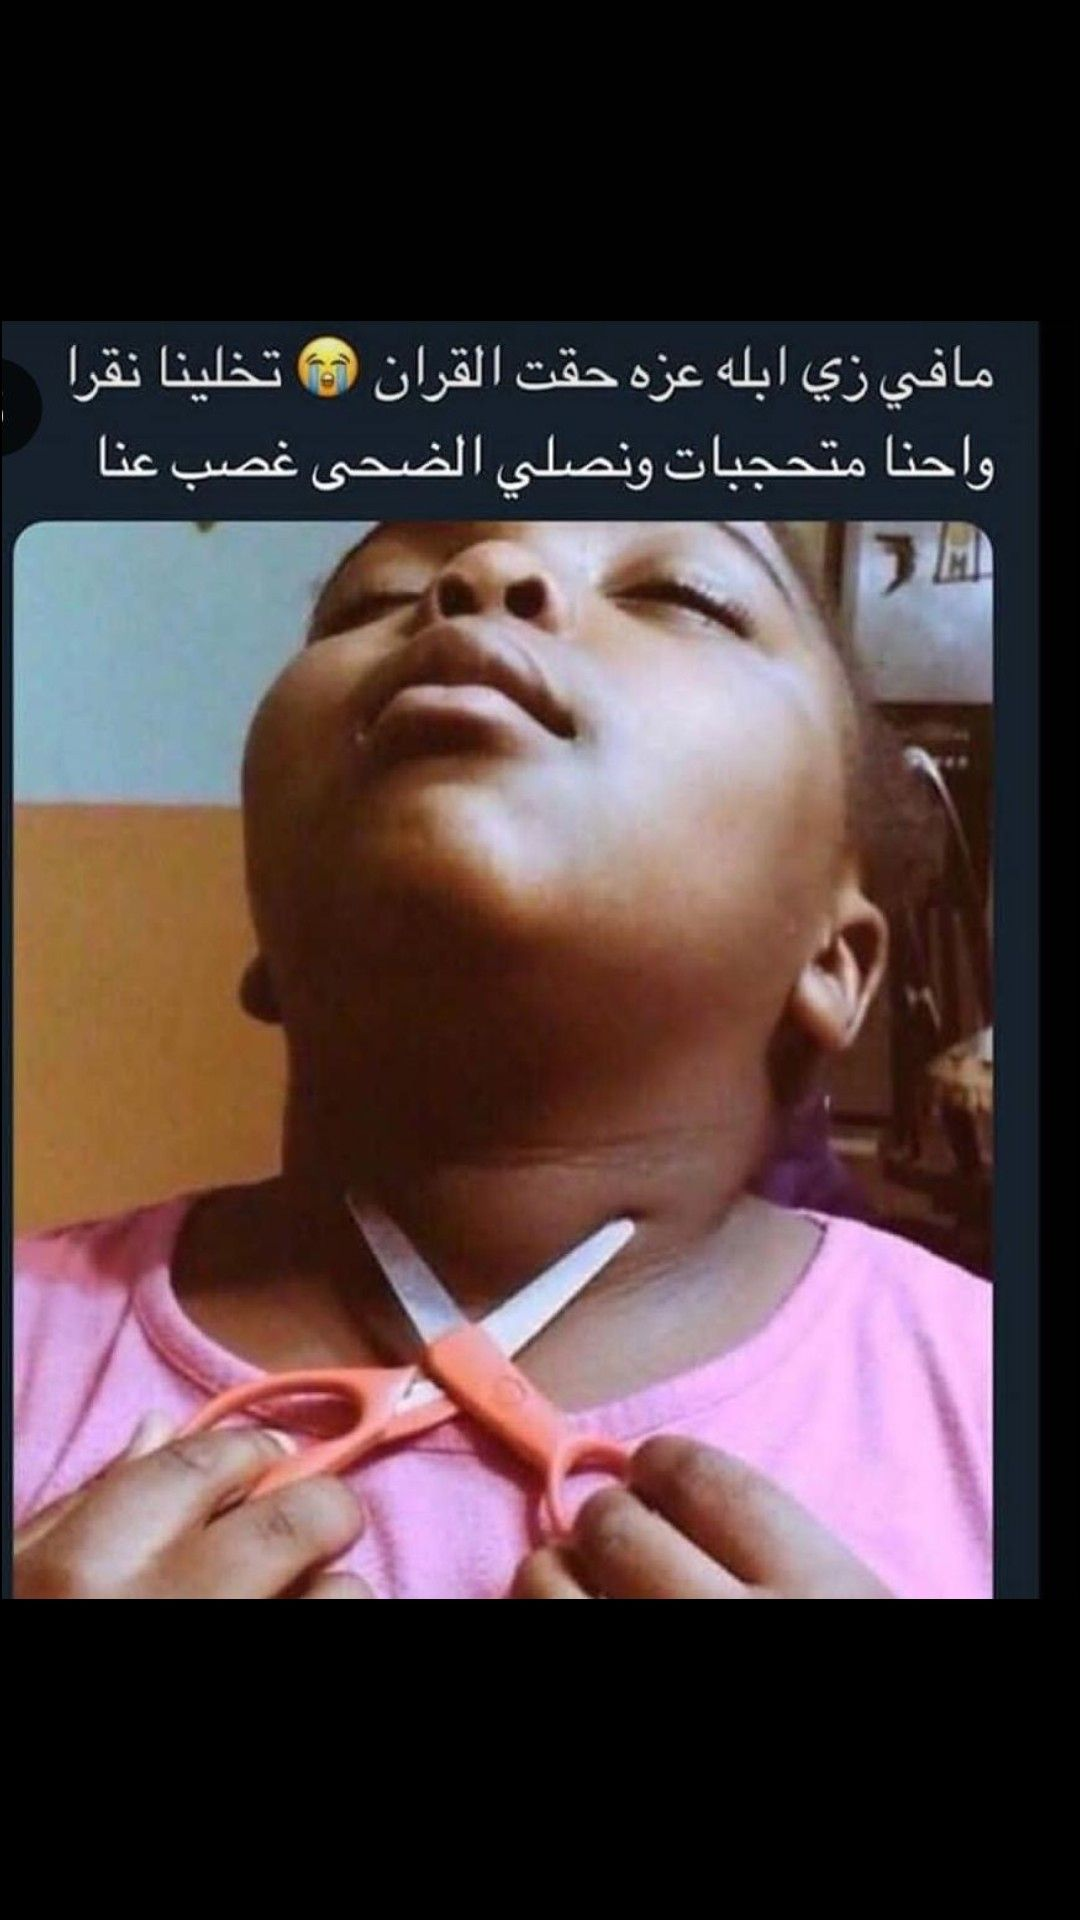 Pin By Jojo On استهبال Jokes Quotes Funny Reaction Pictures Jokes Videos